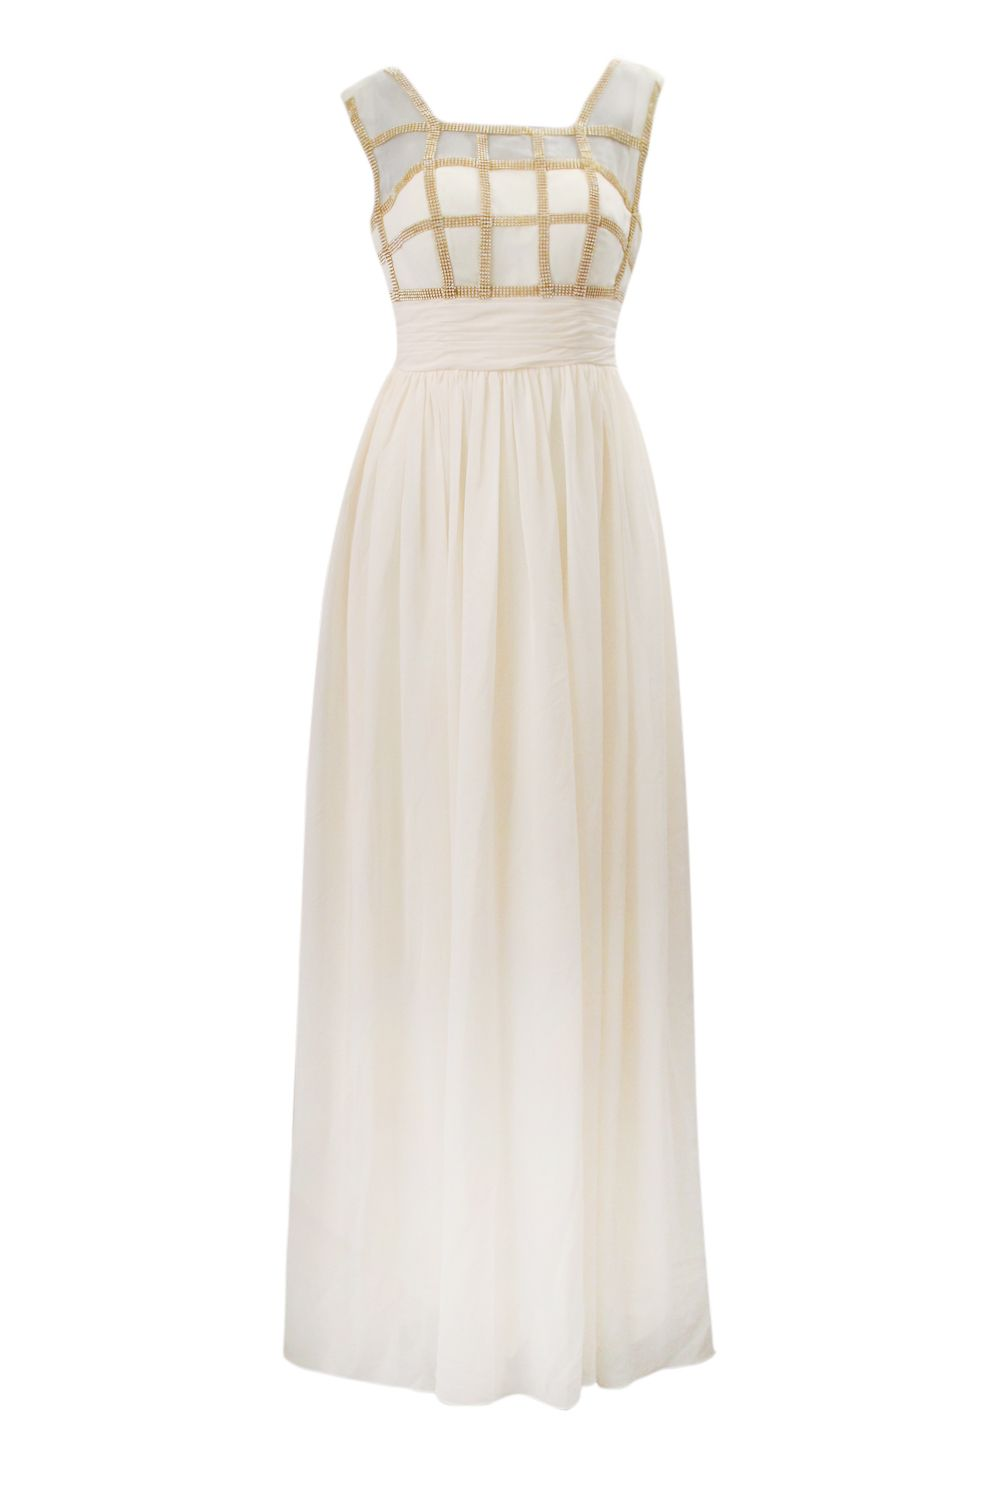 http://hire.girlmeetsdress.com/products/gold-geometric-gown ELLIOT CLAIRE  Gold Geometric Gown  Hire: £79 Girl Meets Dress Dress Hire, Rent a Dress